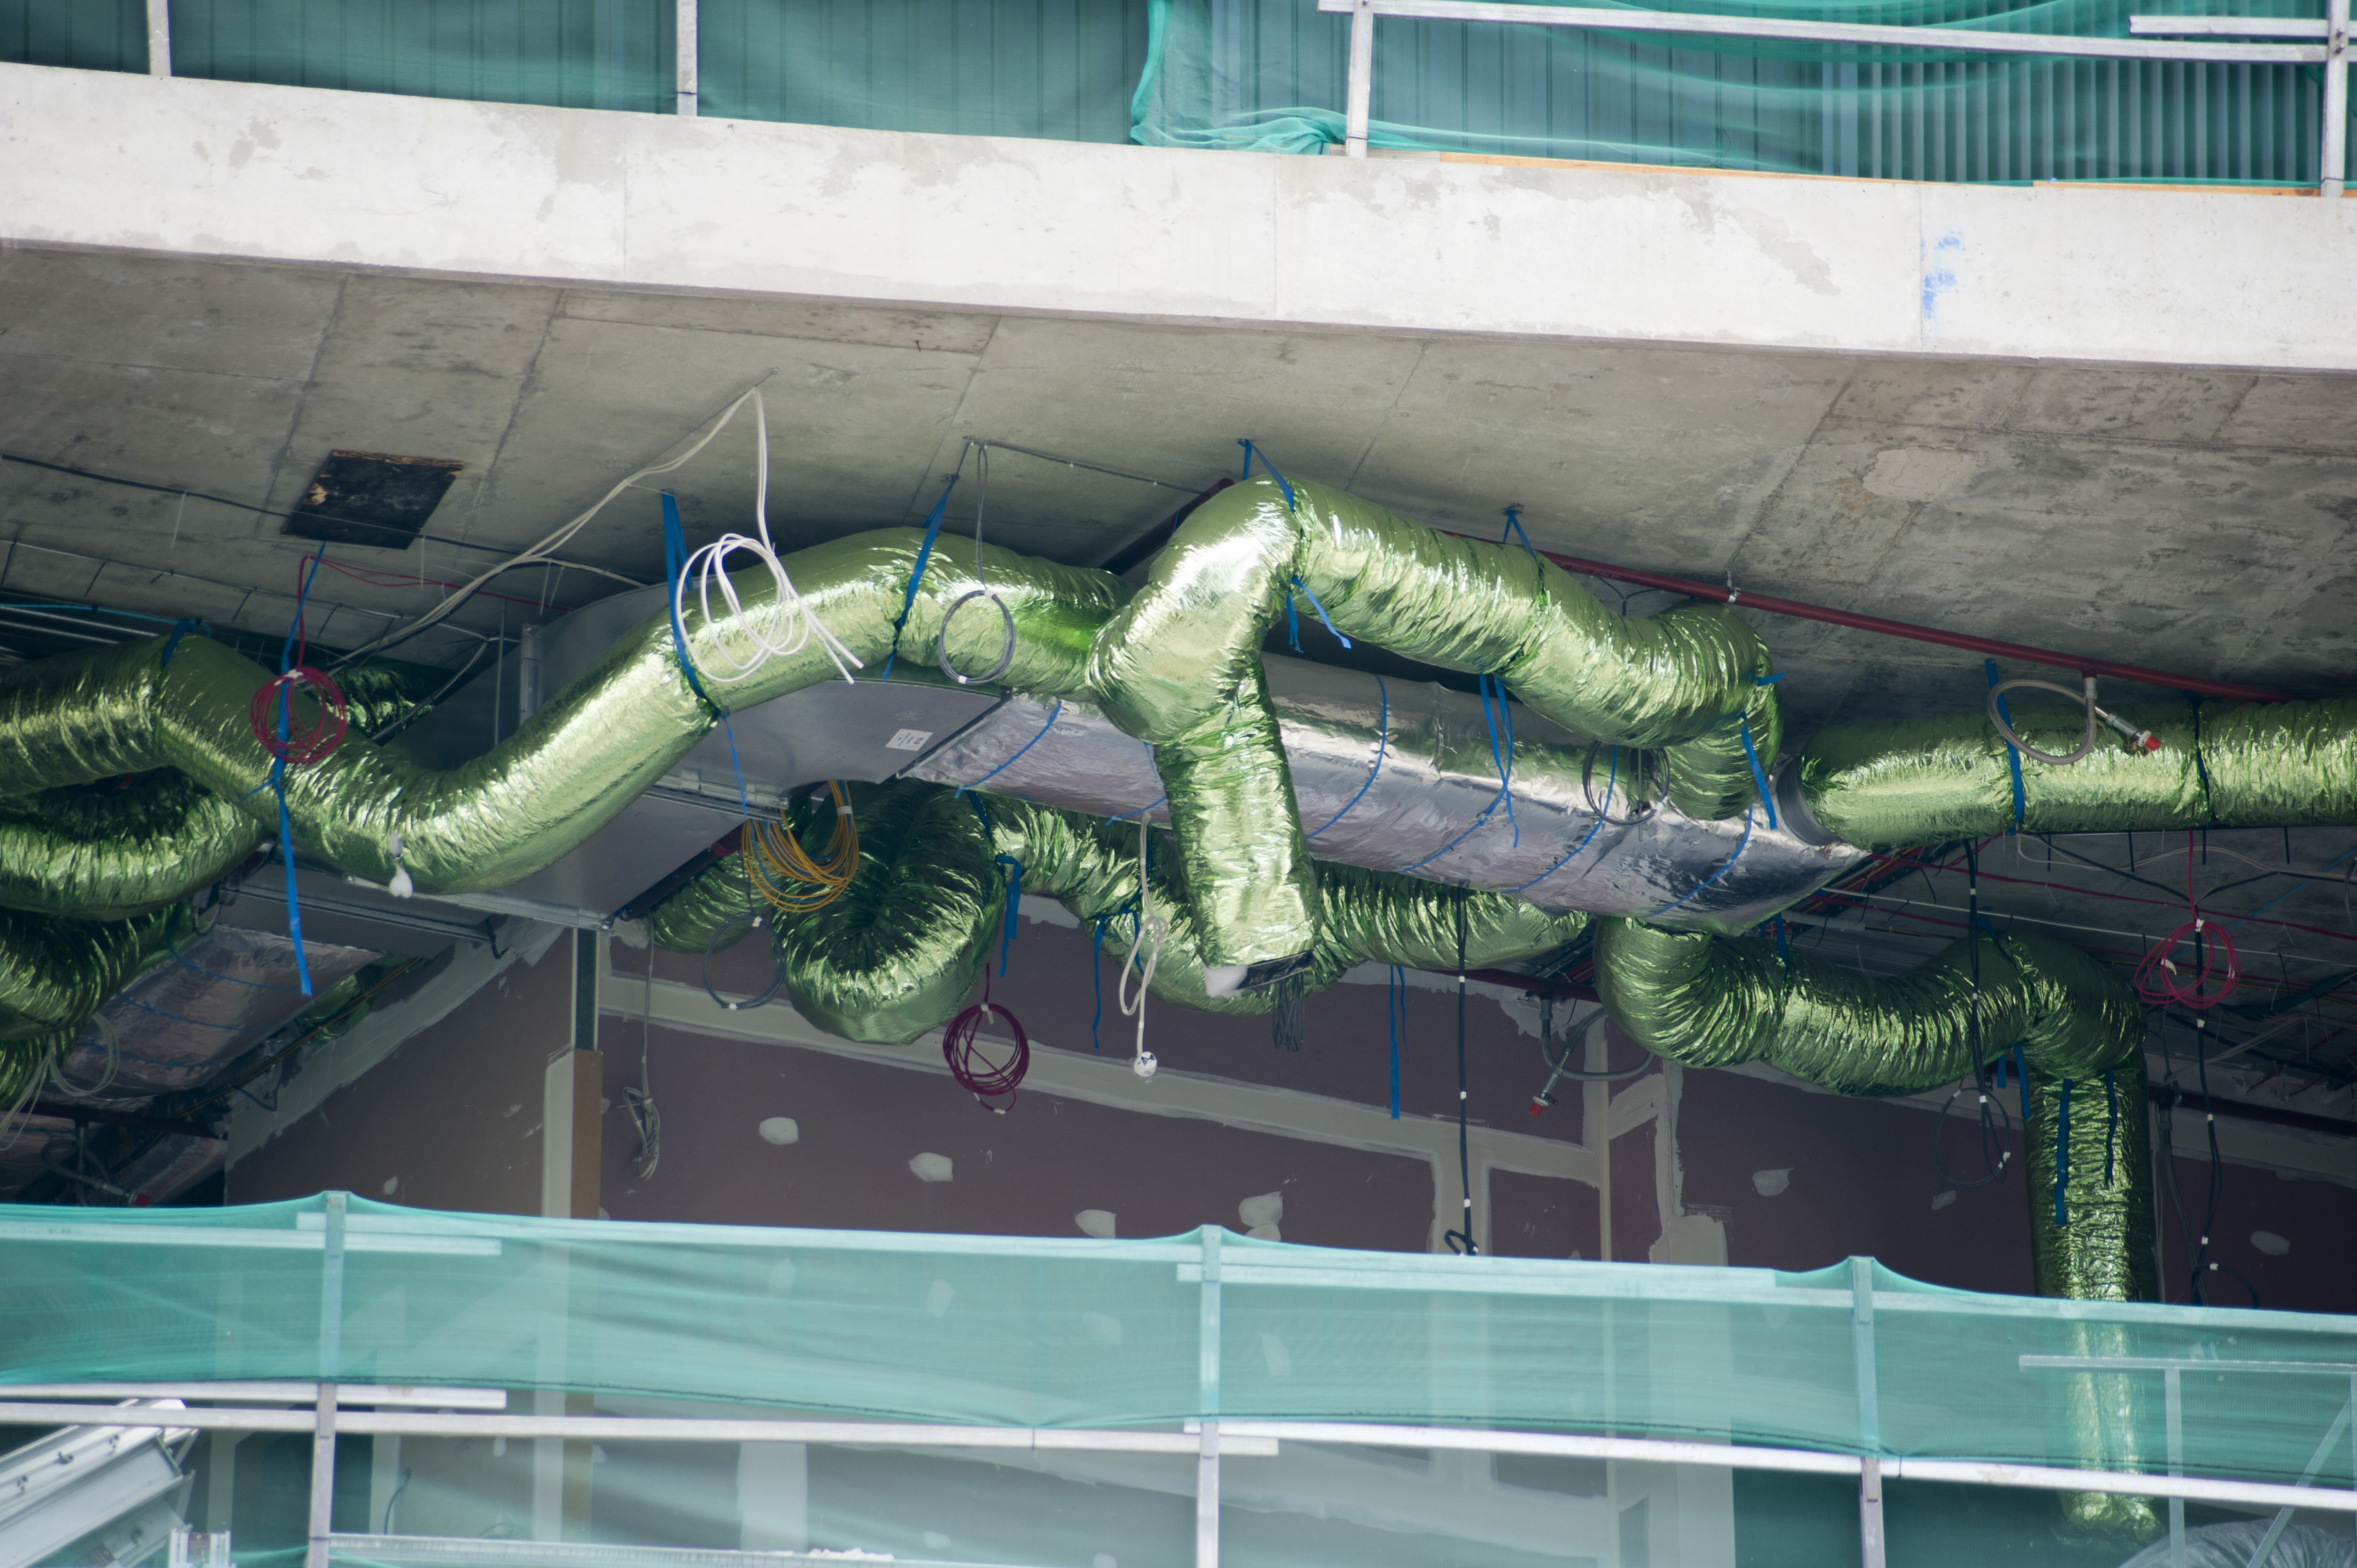 Installing Green Air Conditioning Duct Work of a Commerical Building